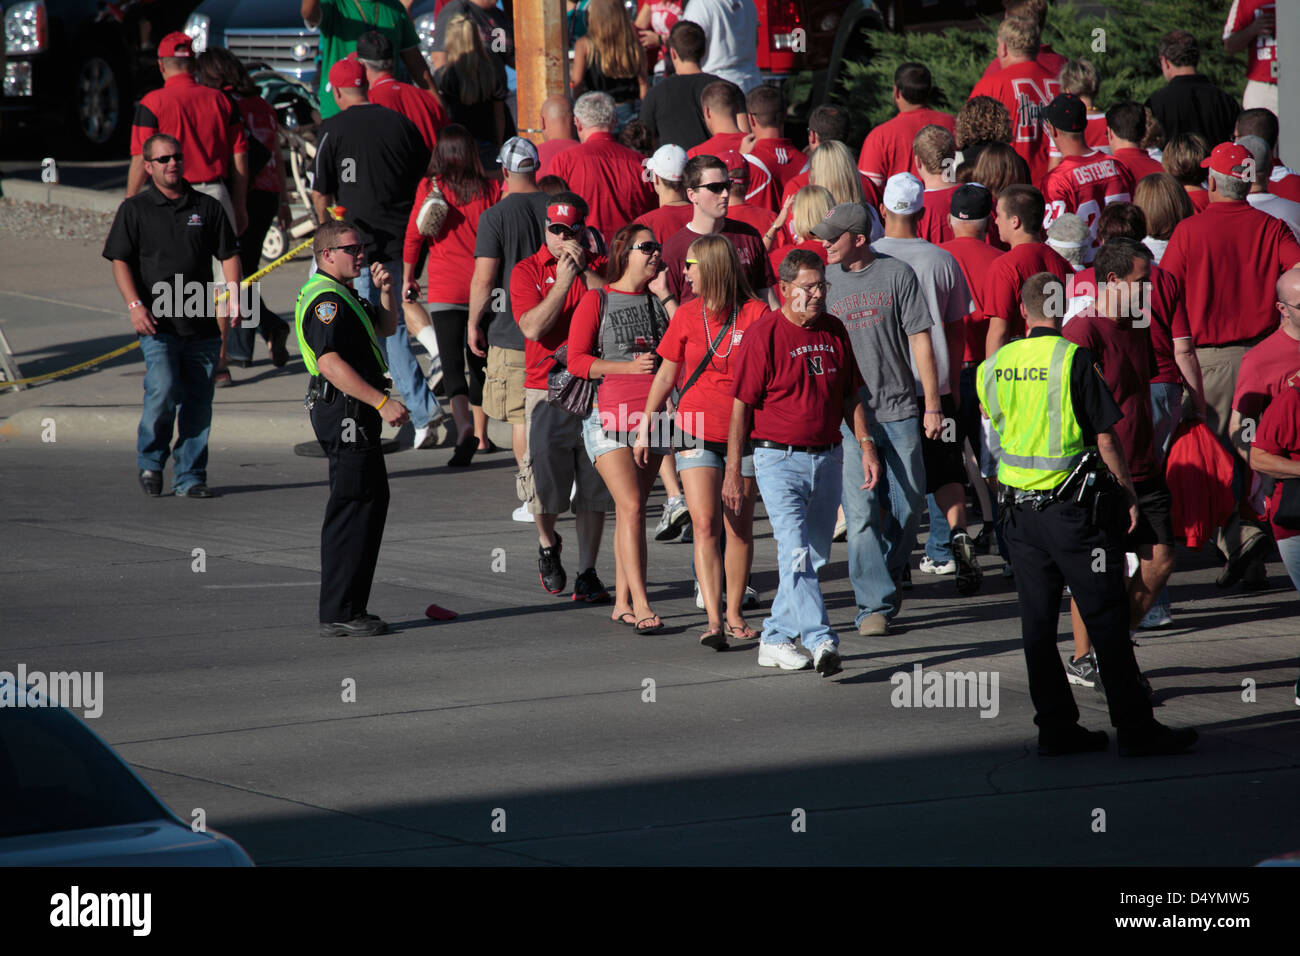 Police officers direct thick Nebraska Cornhuskers pedestrian traffic. Stock Photo